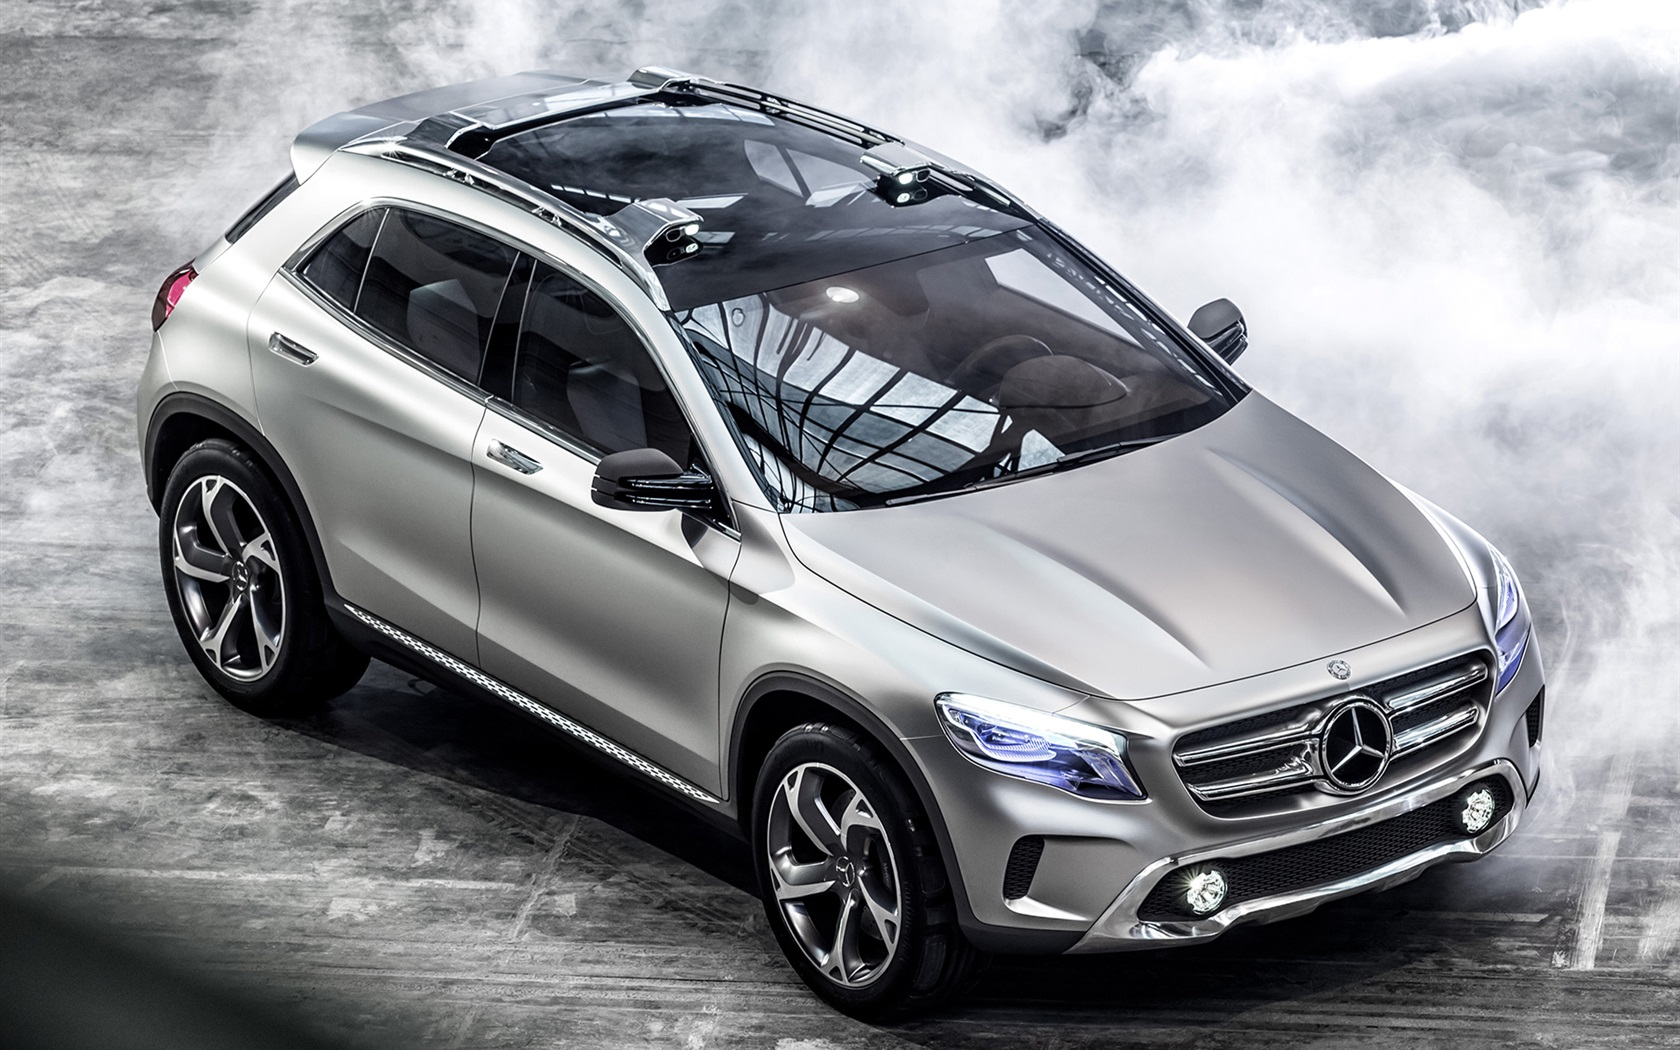 mercedes benz gla concept car beleuchtung silber 1920x1440 hd hintergrundbilder hd bild. Black Bedroom Furniture Sets. Home Design Ideas